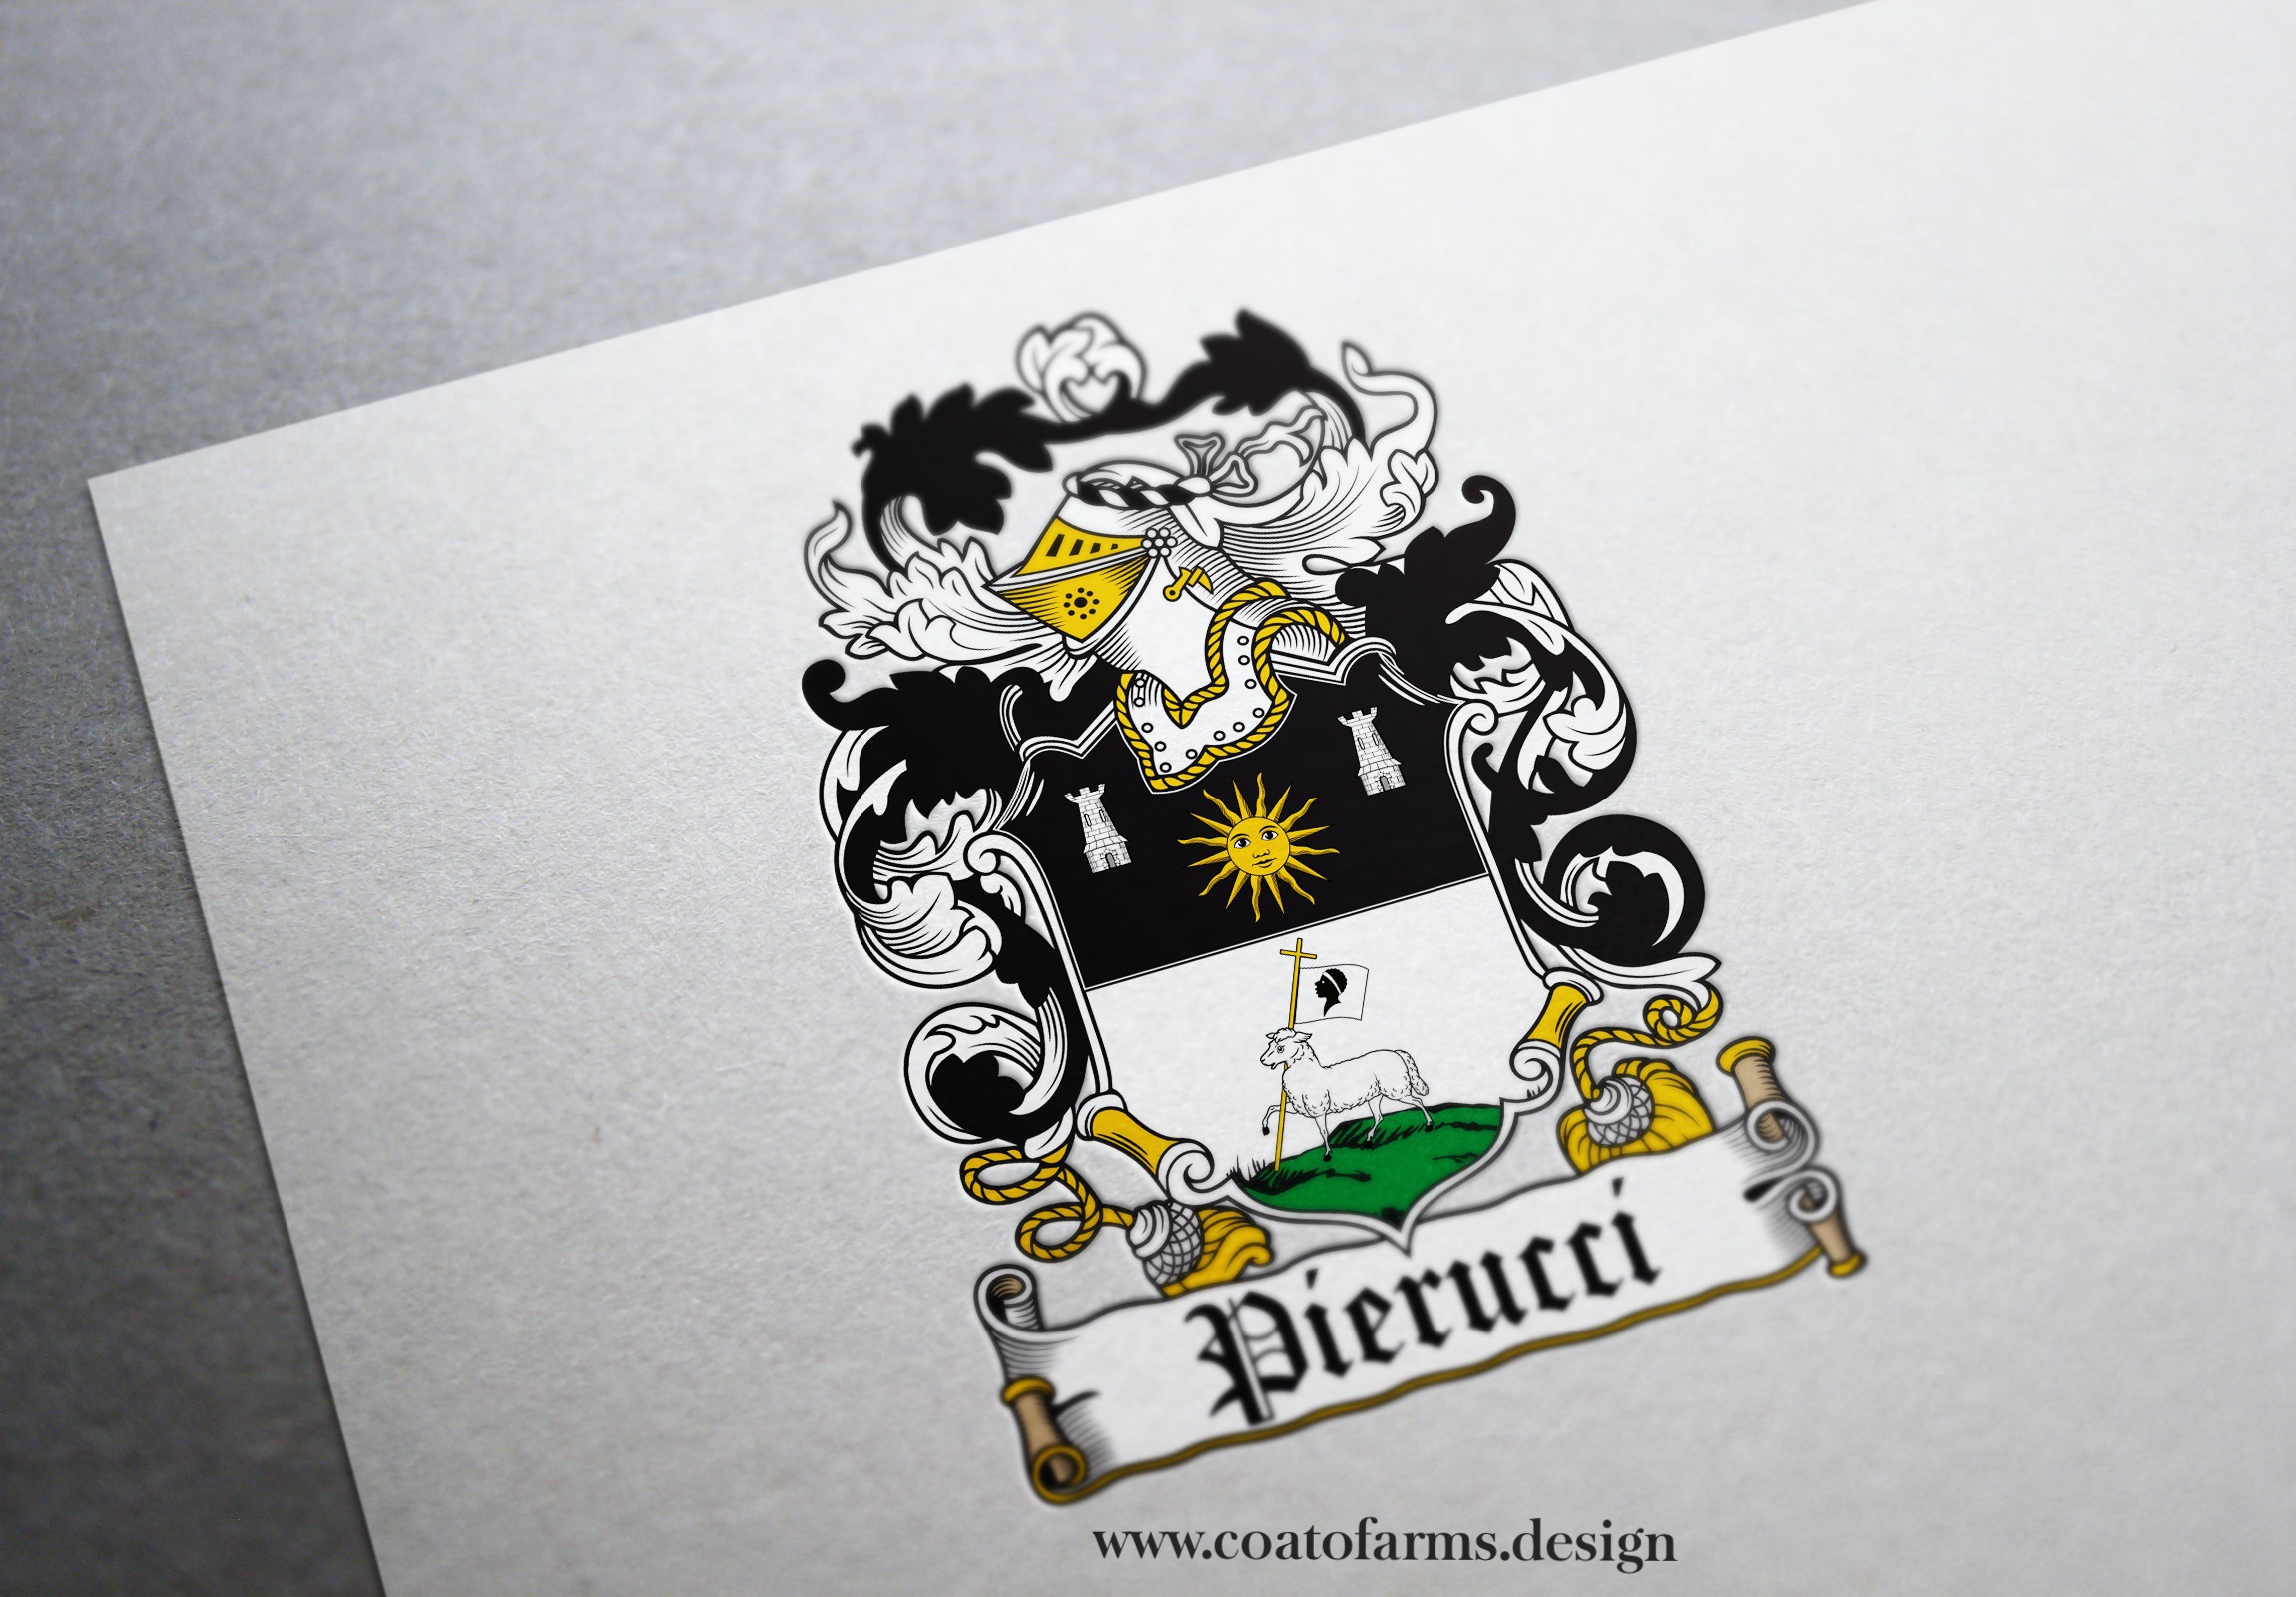 Coat of arms (family crest) I designed for an old cheesemakers family from Corsica